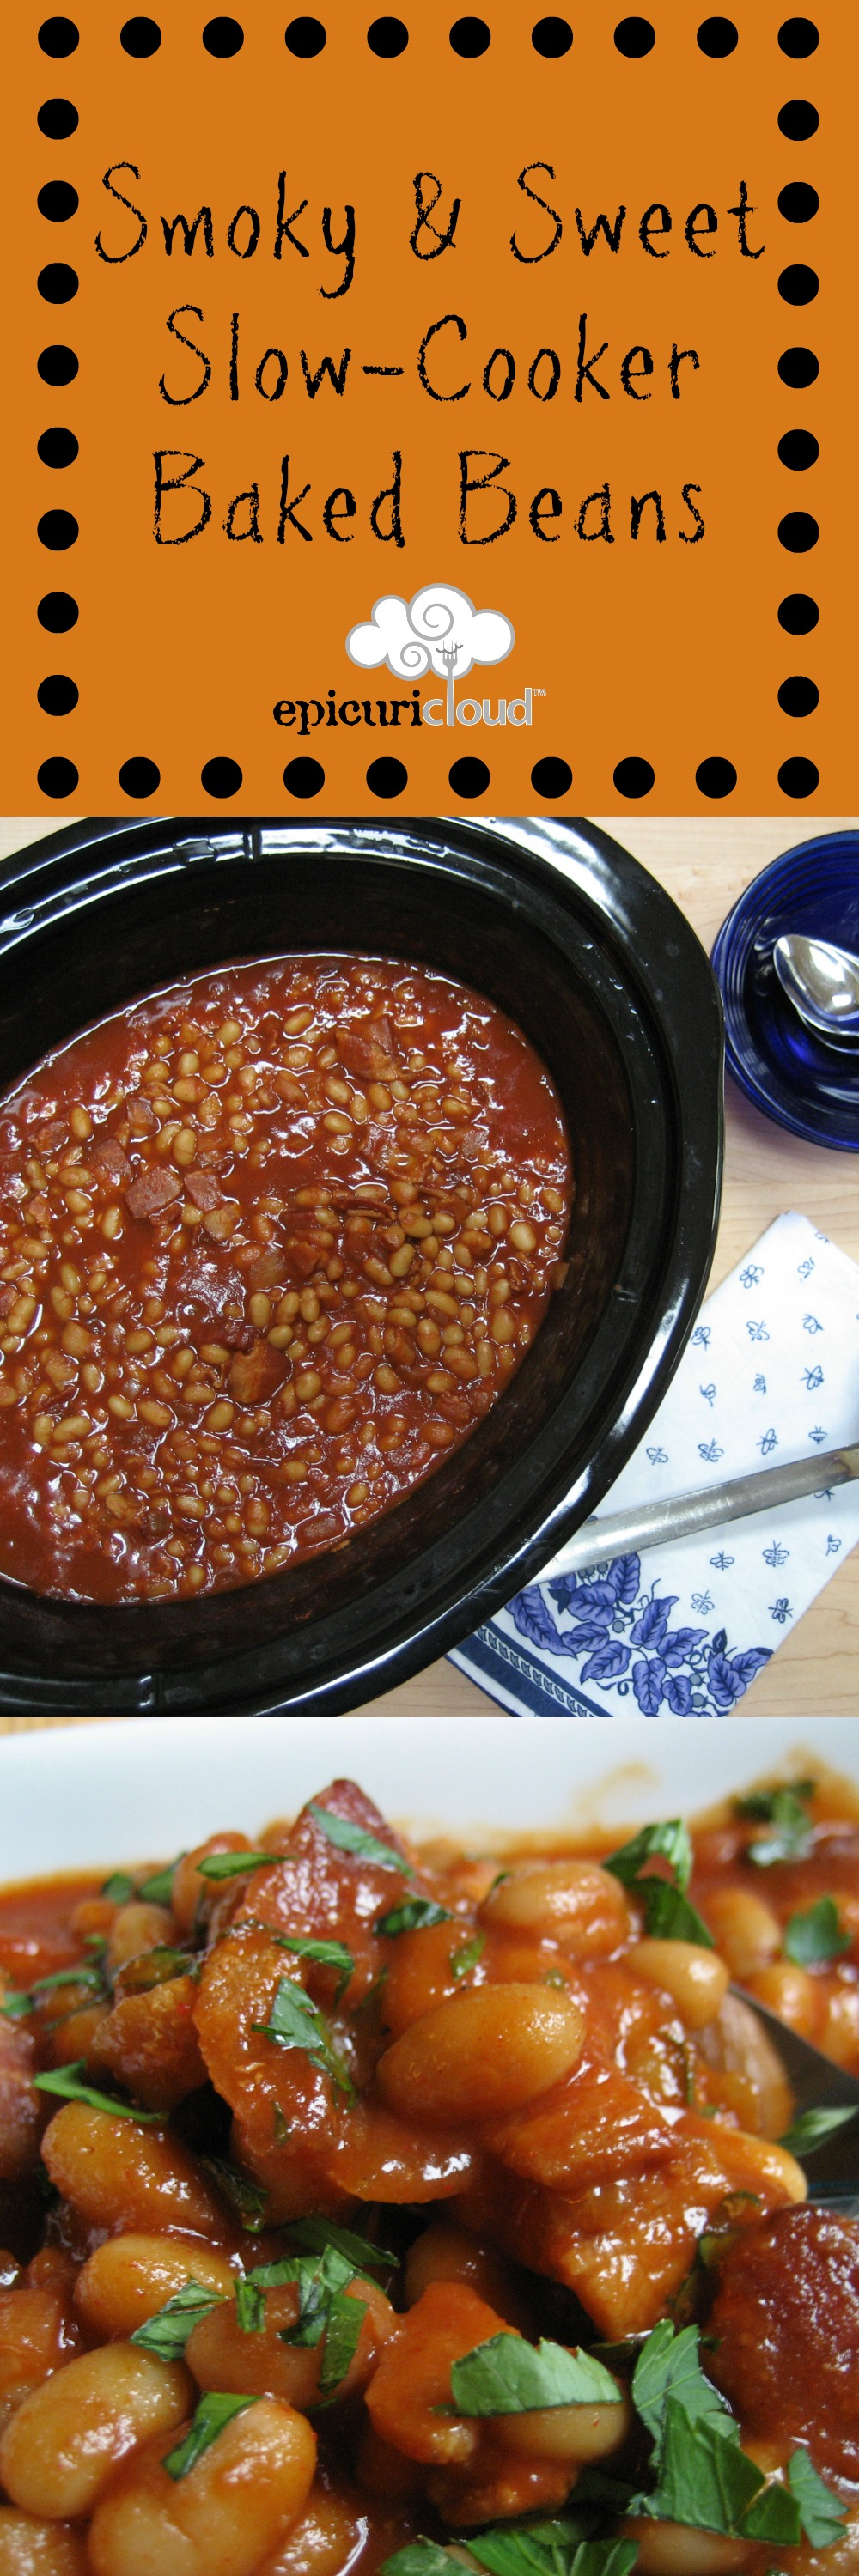 Smoky & Sweet Slow-Cooker Baked Beans - epicuricloud